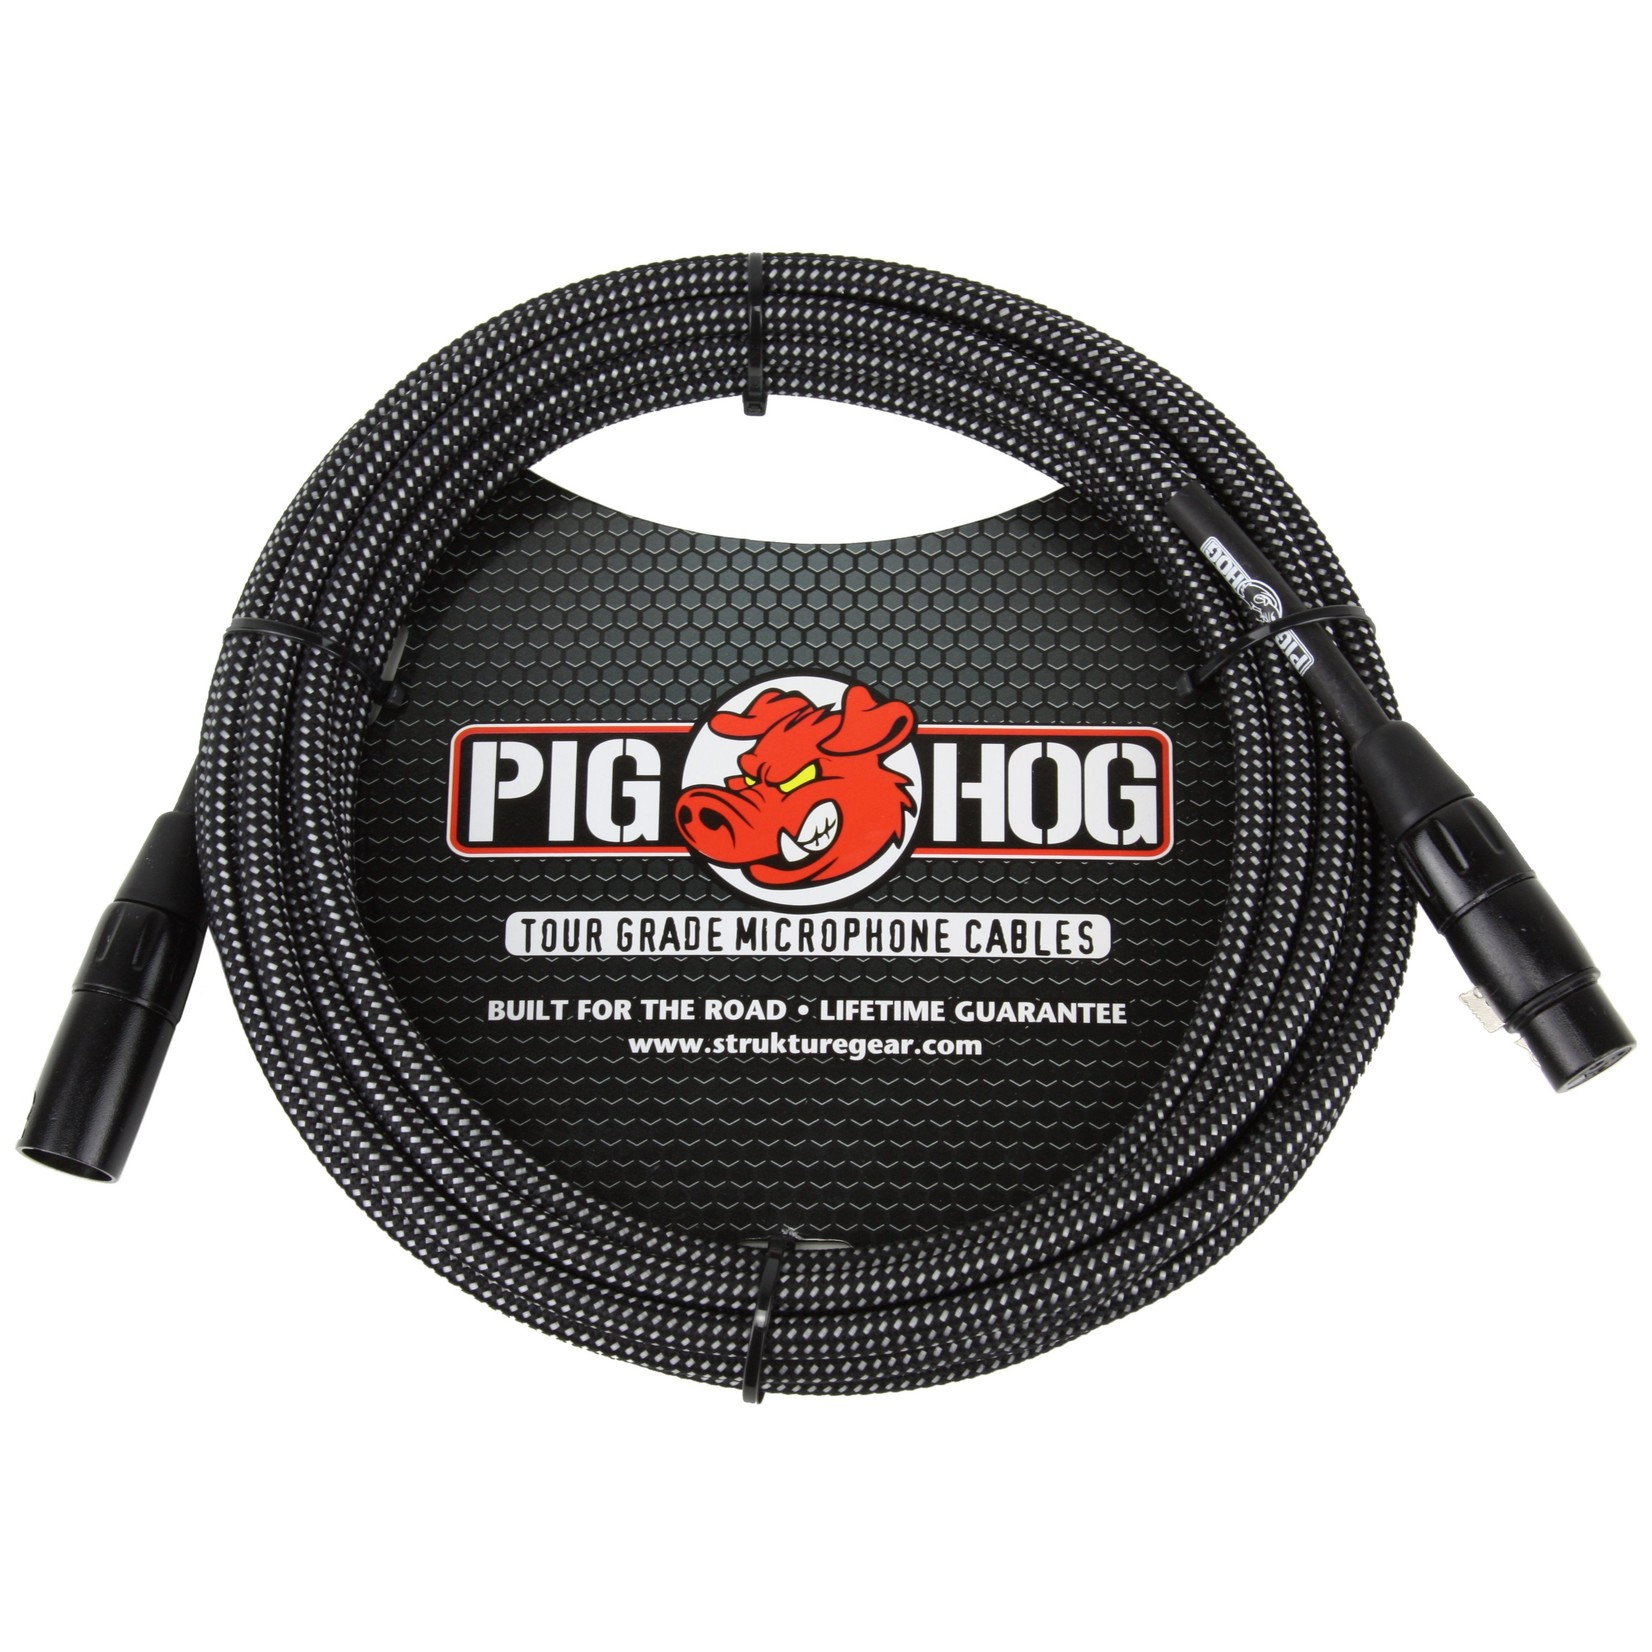 Pig Hog Pig Hog Black & White Woven Tour Grade Microphone Cable, 10ft XLR (PHM10BKW) (10-foot, 10')